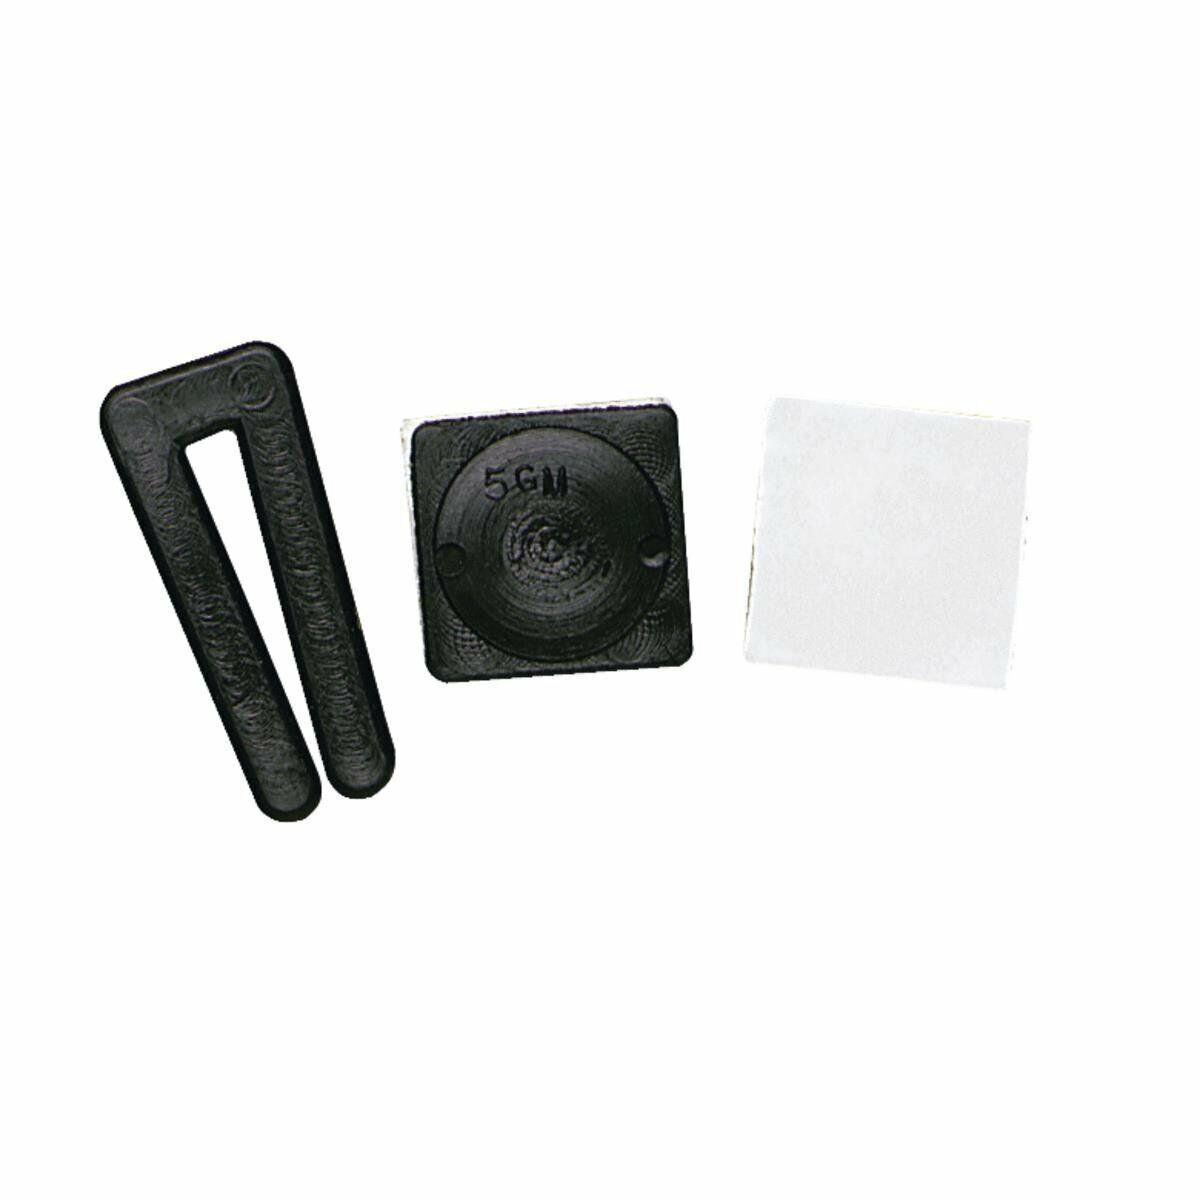 Westinghouse 7701500 Light Fixture Fan Blade Balancing Kit